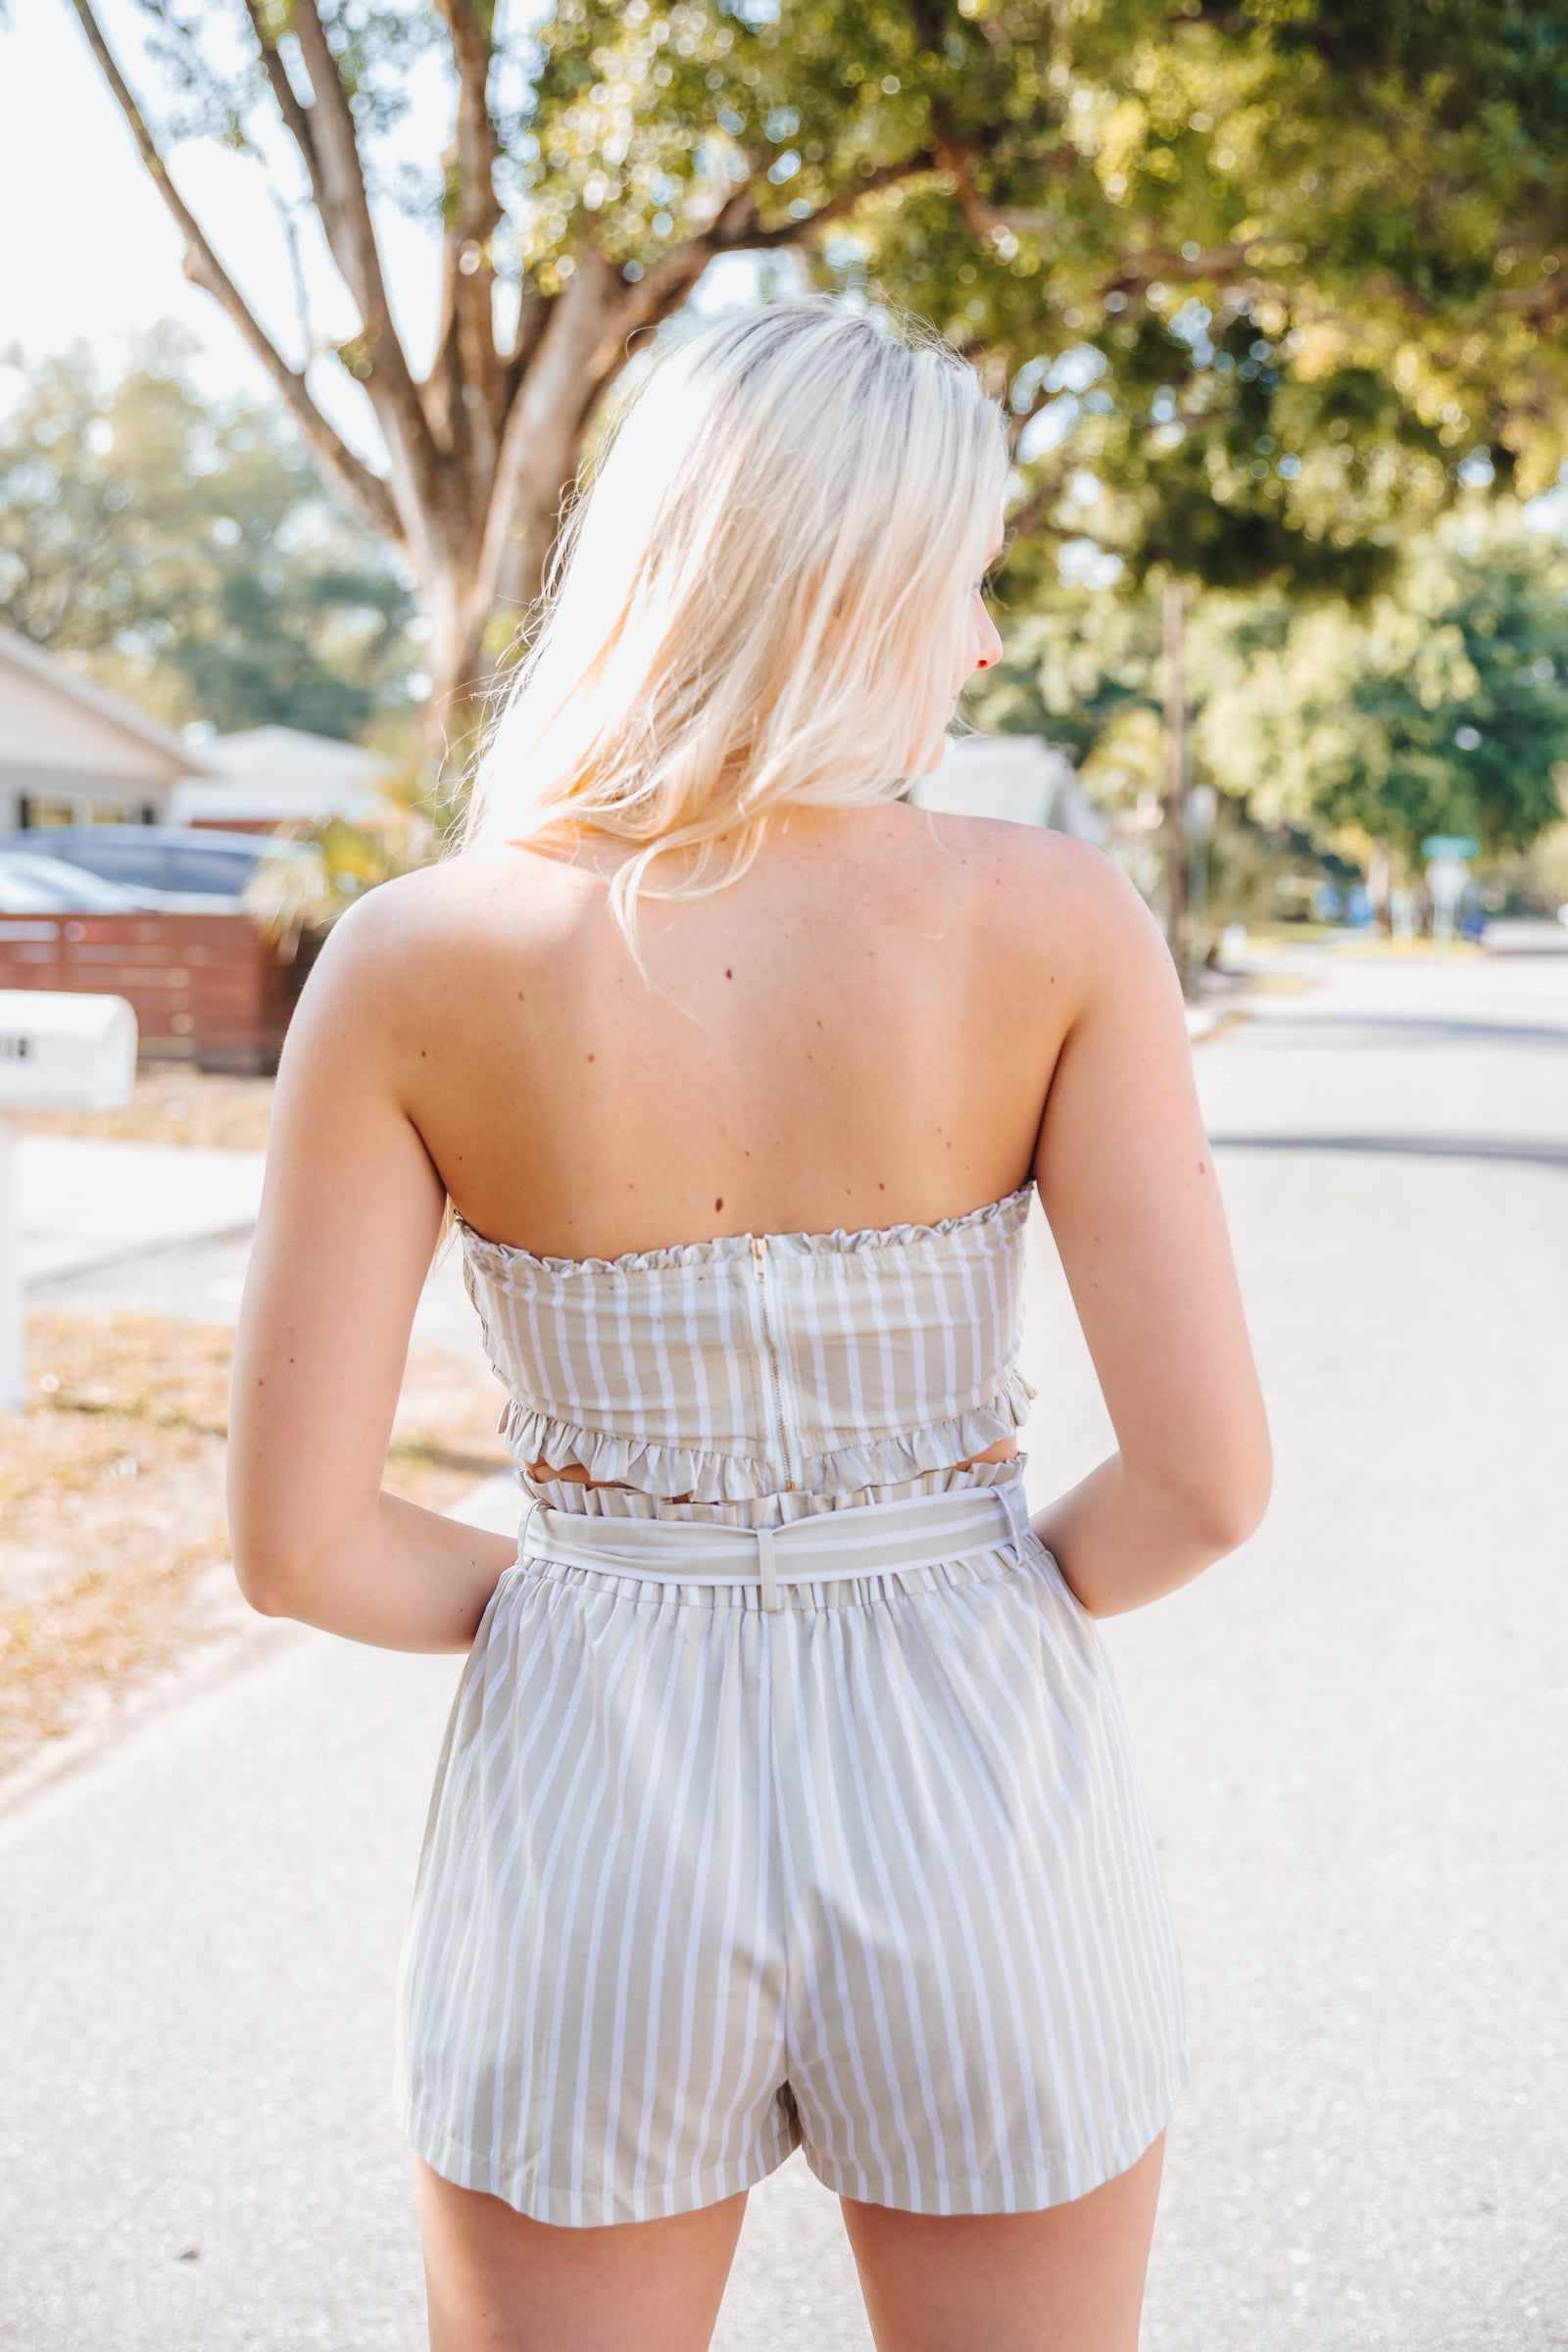 This crop top has white stripes that go across its fabric. It is strapless with a straight neckline on a smocked bodice with button details down the center and ends in a small ruffle-trimmed hem.